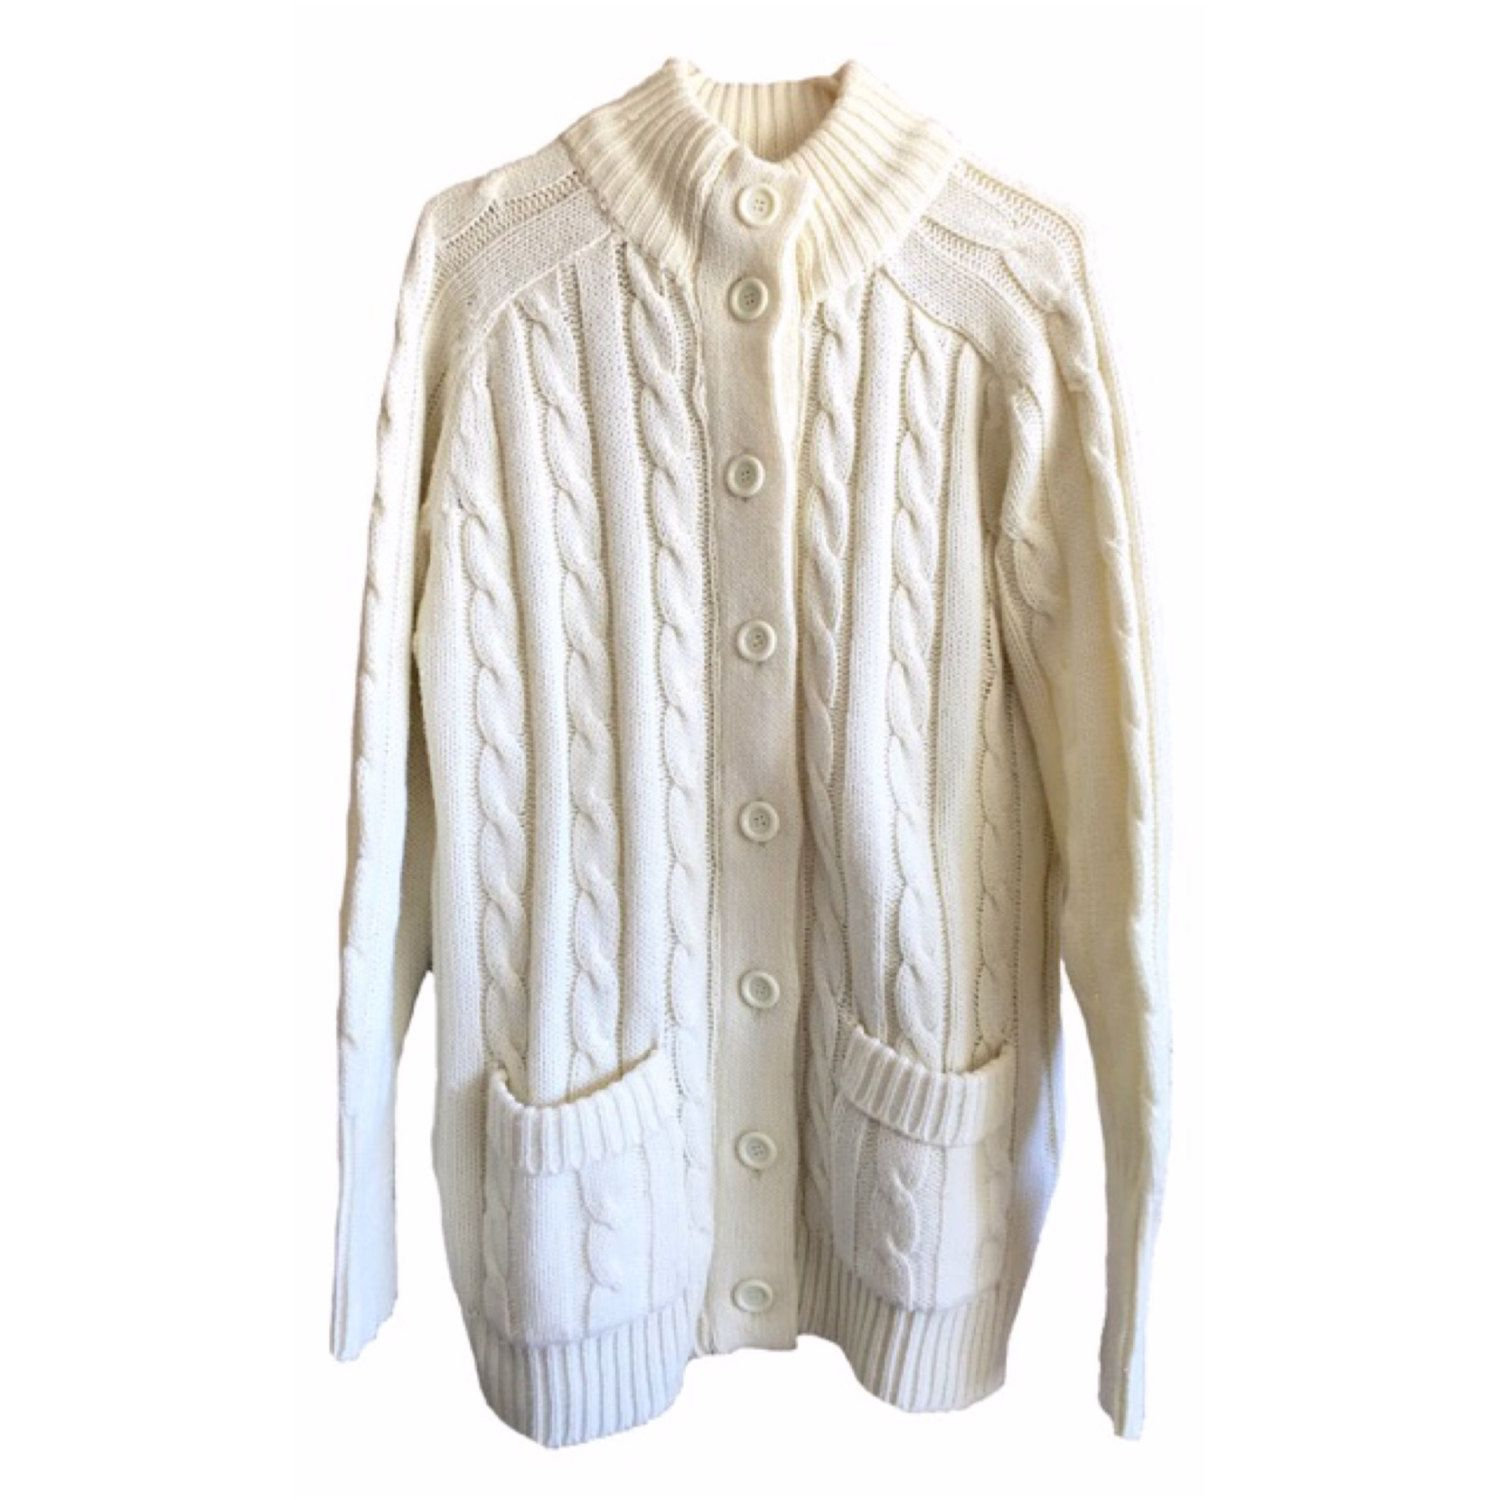 Sears Cable Knit Cardigan off white cream pockets slouchy ...